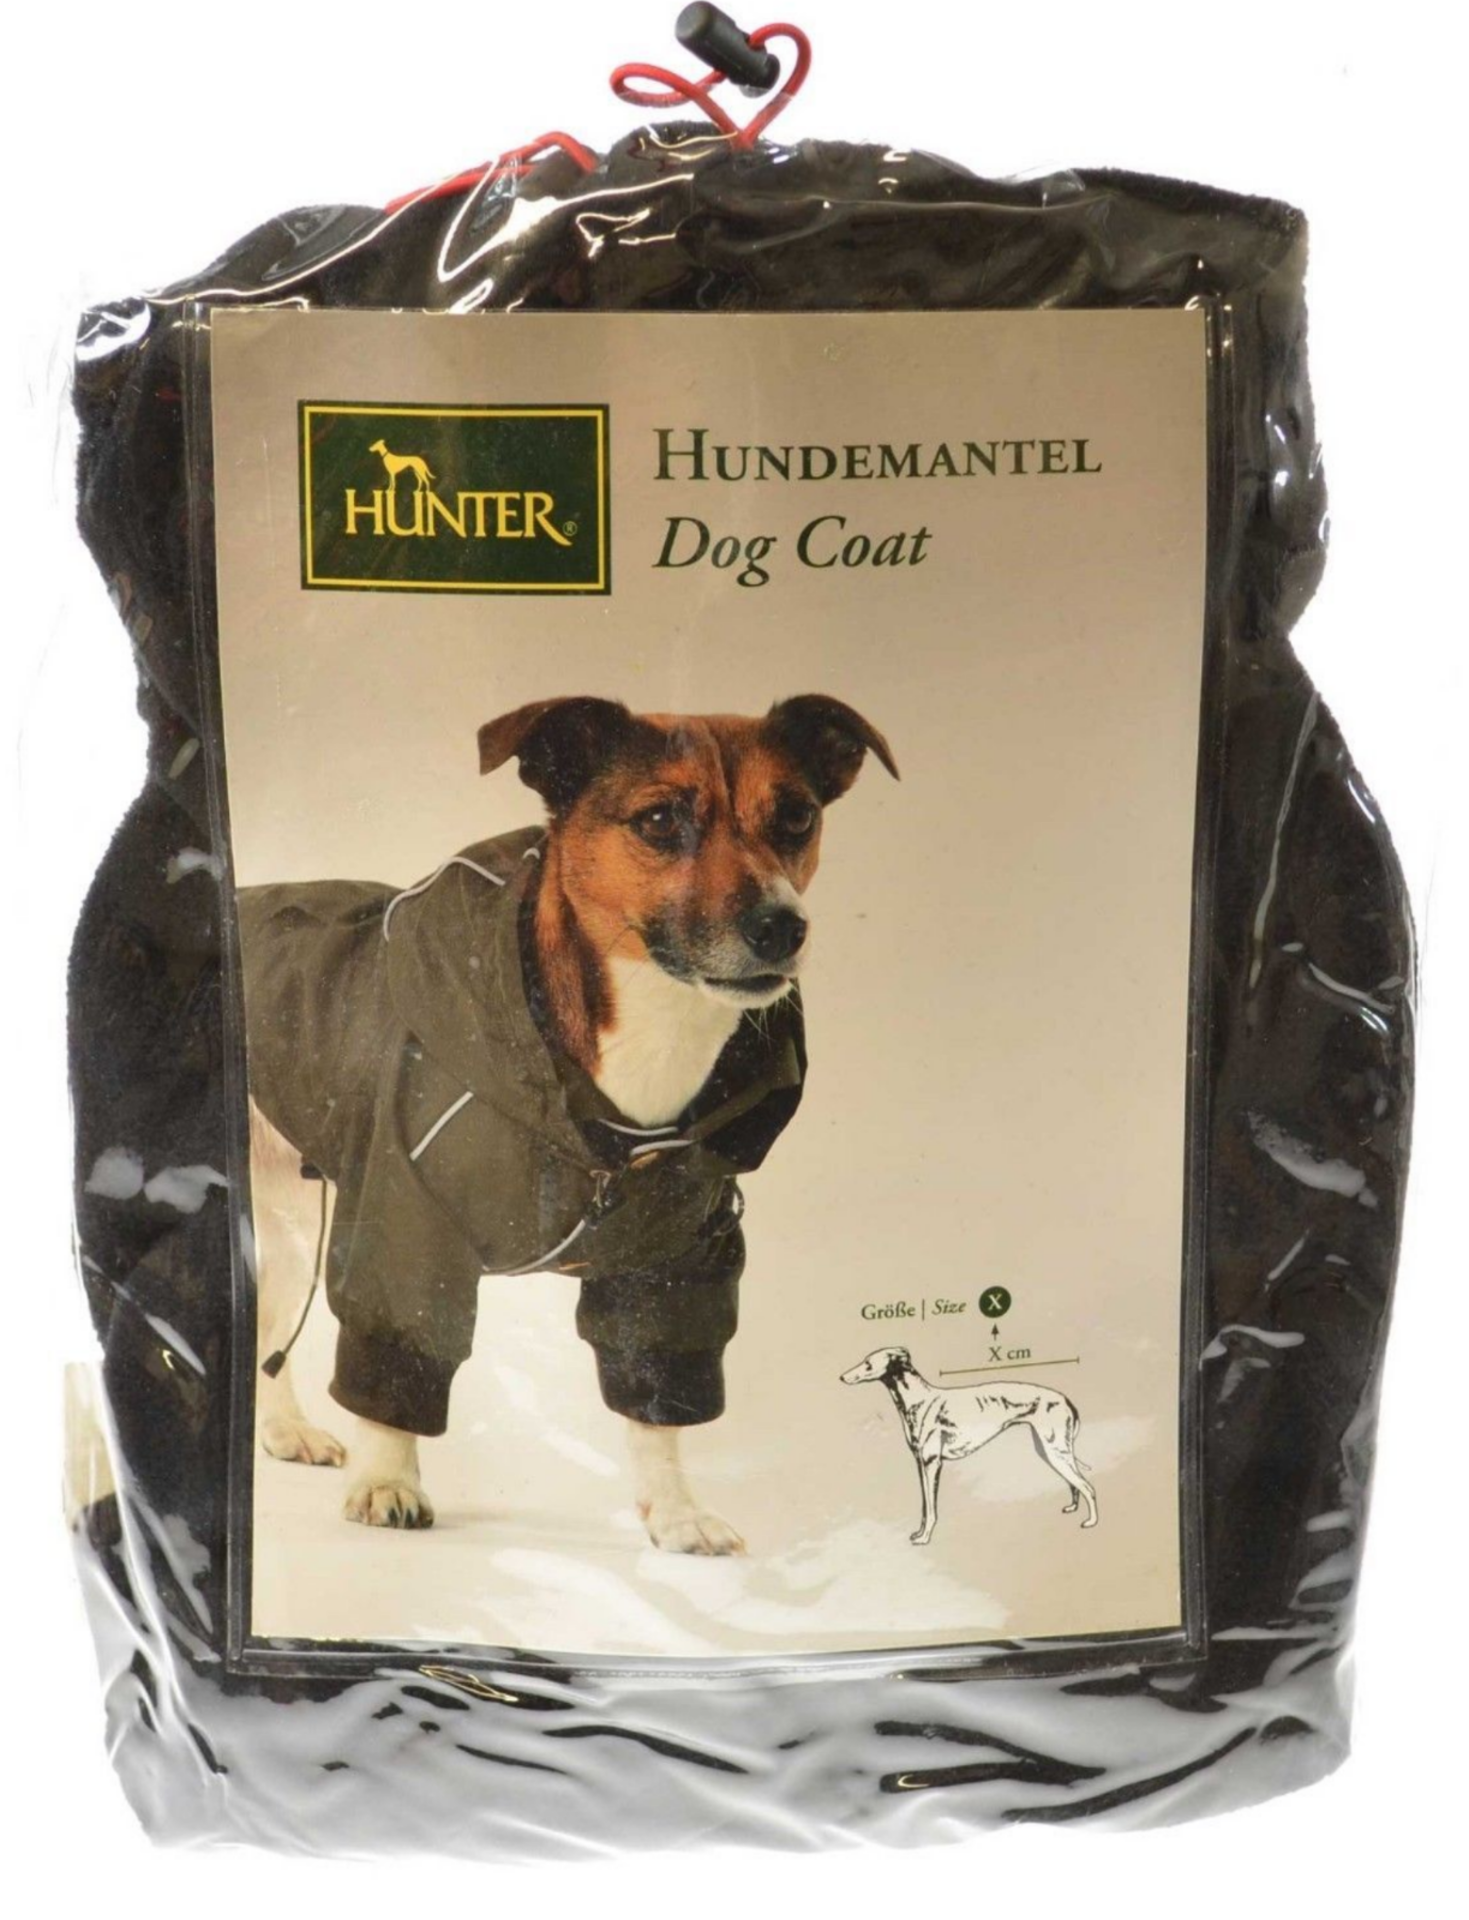 6 x Brand New Hunter Dog Coats Assorted Sizes - Image 2 of 2